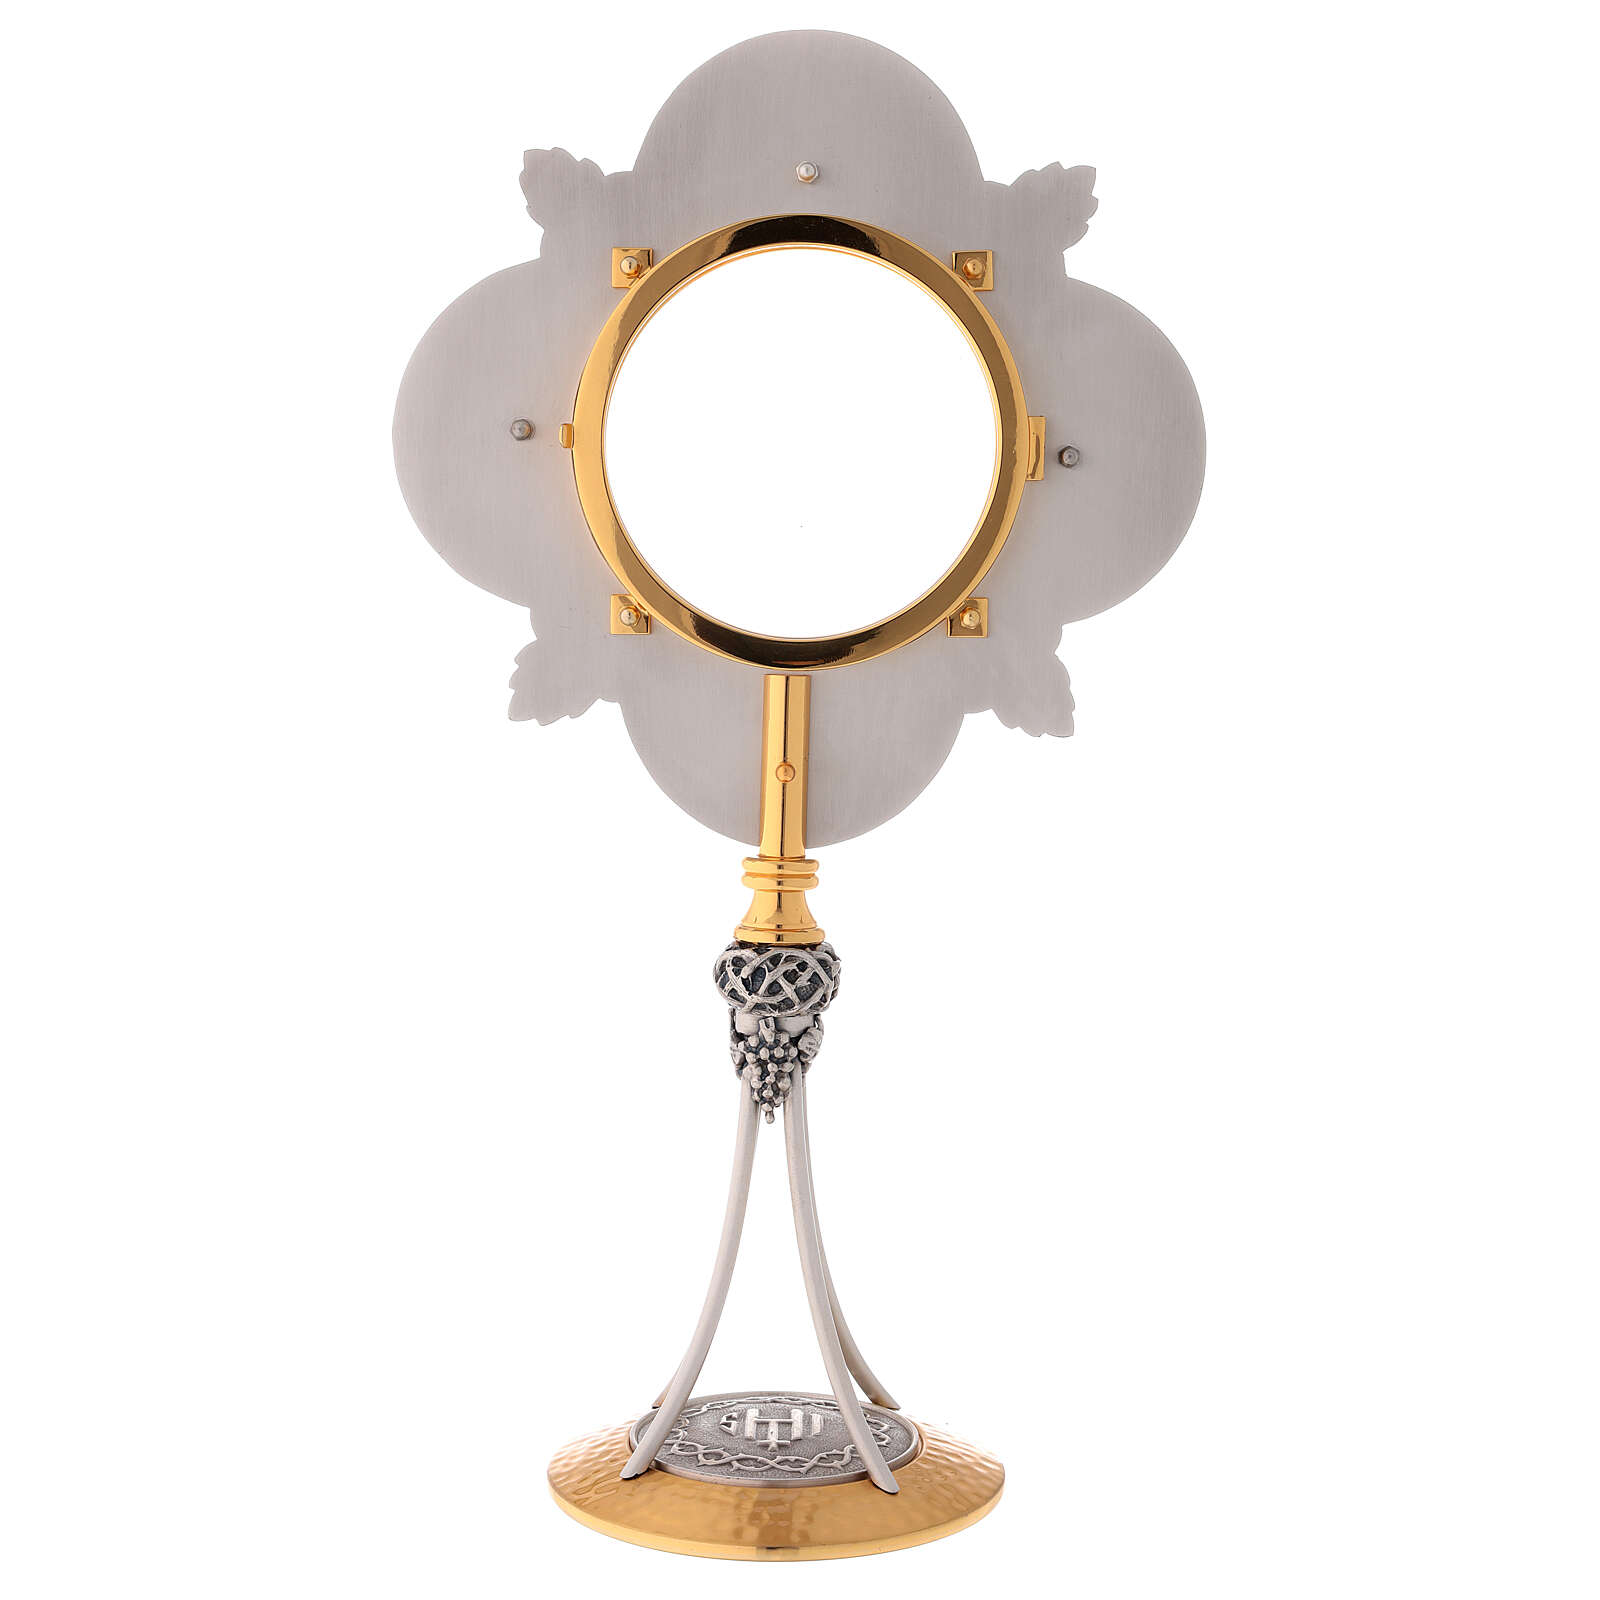 Gold plated monstrance cast brass 4 in diameter 4